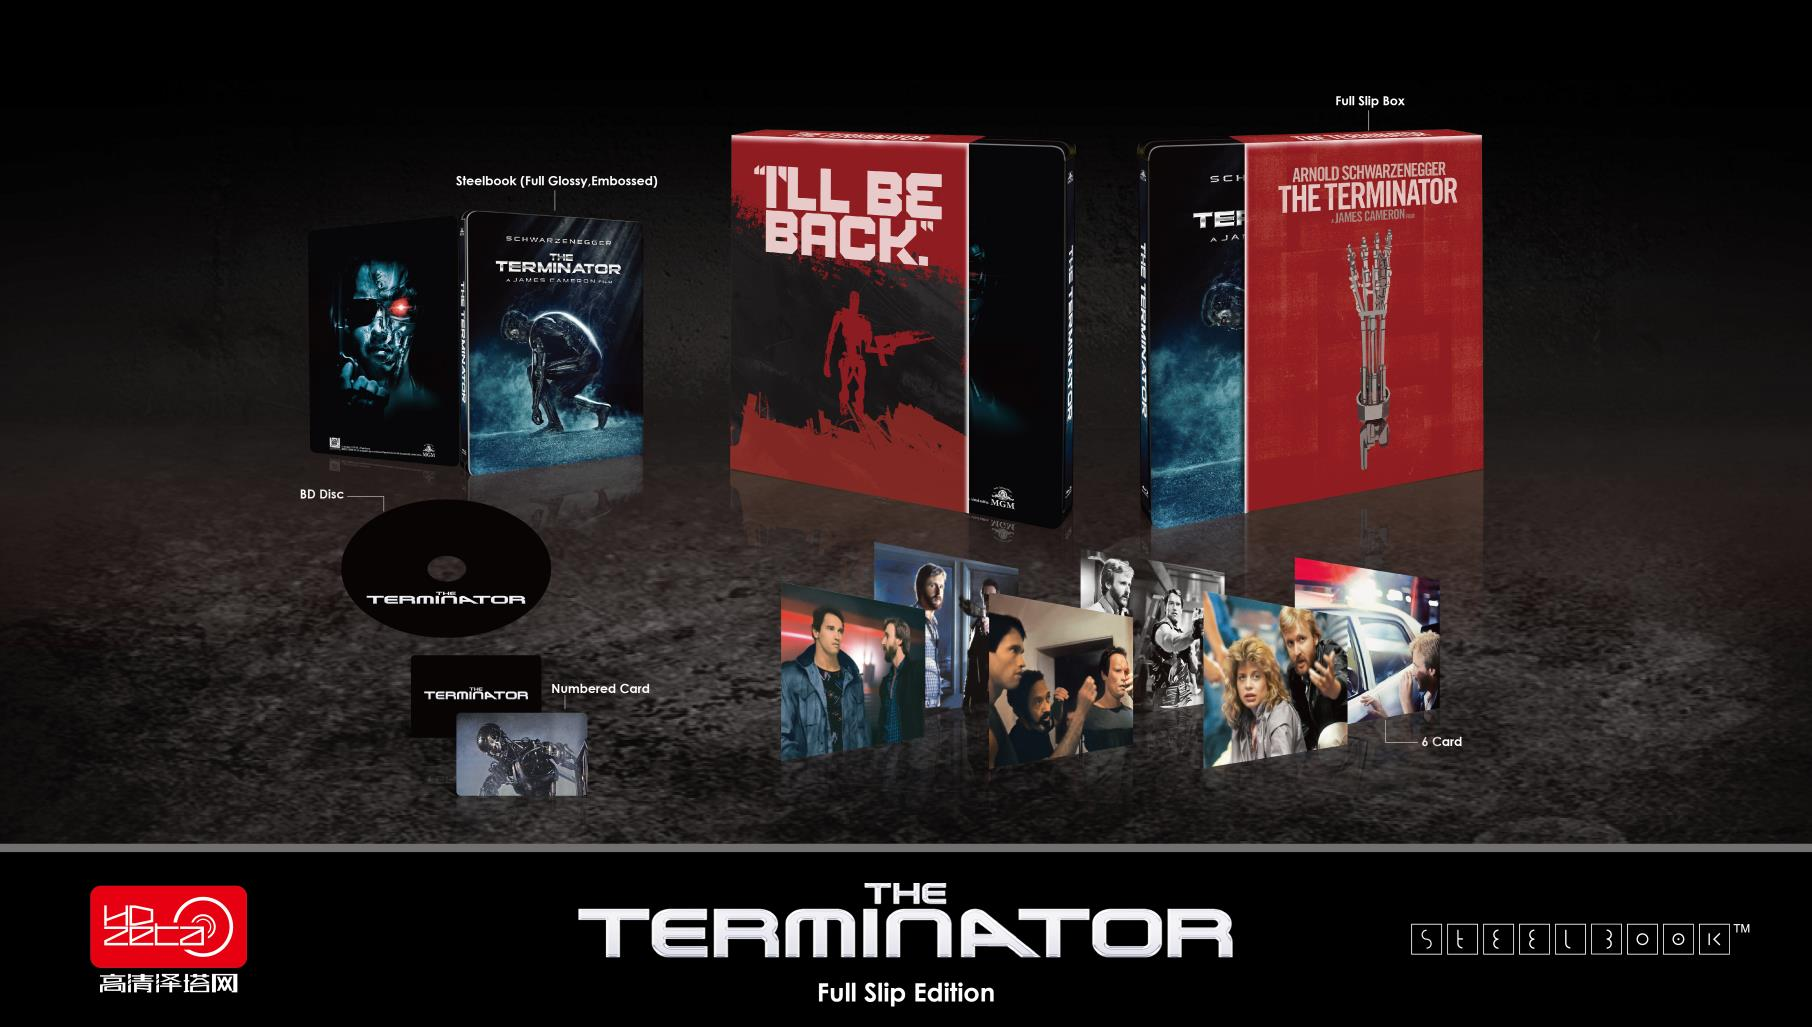 The Terminator HDzeta Exclusive steelbook Fulllsip Edition